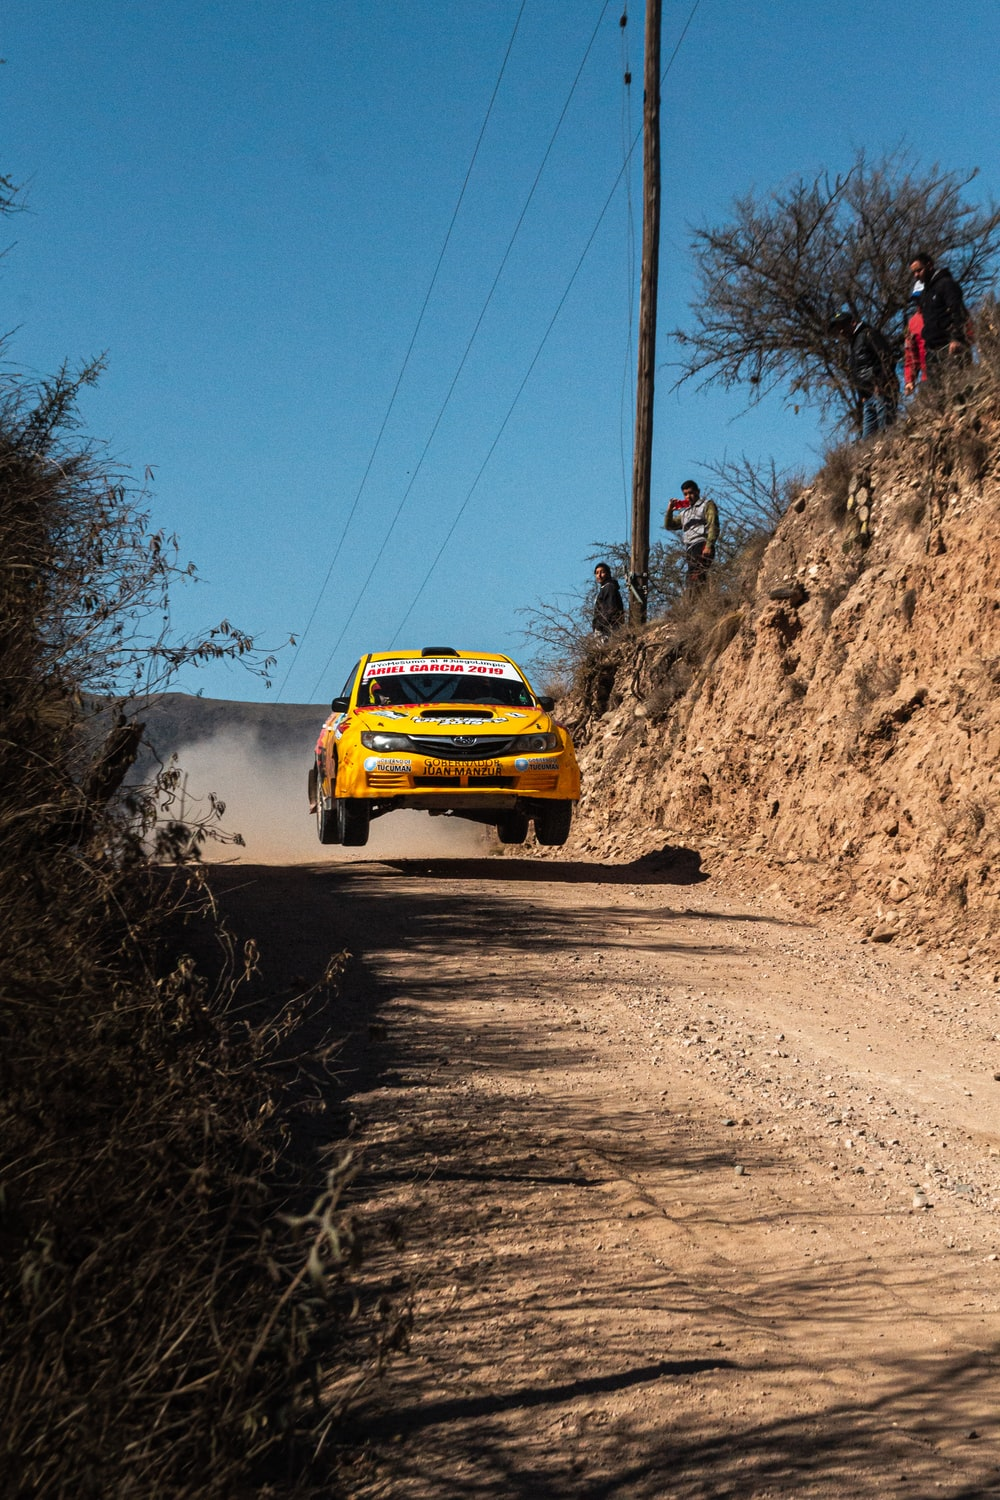 yellow rally car on road